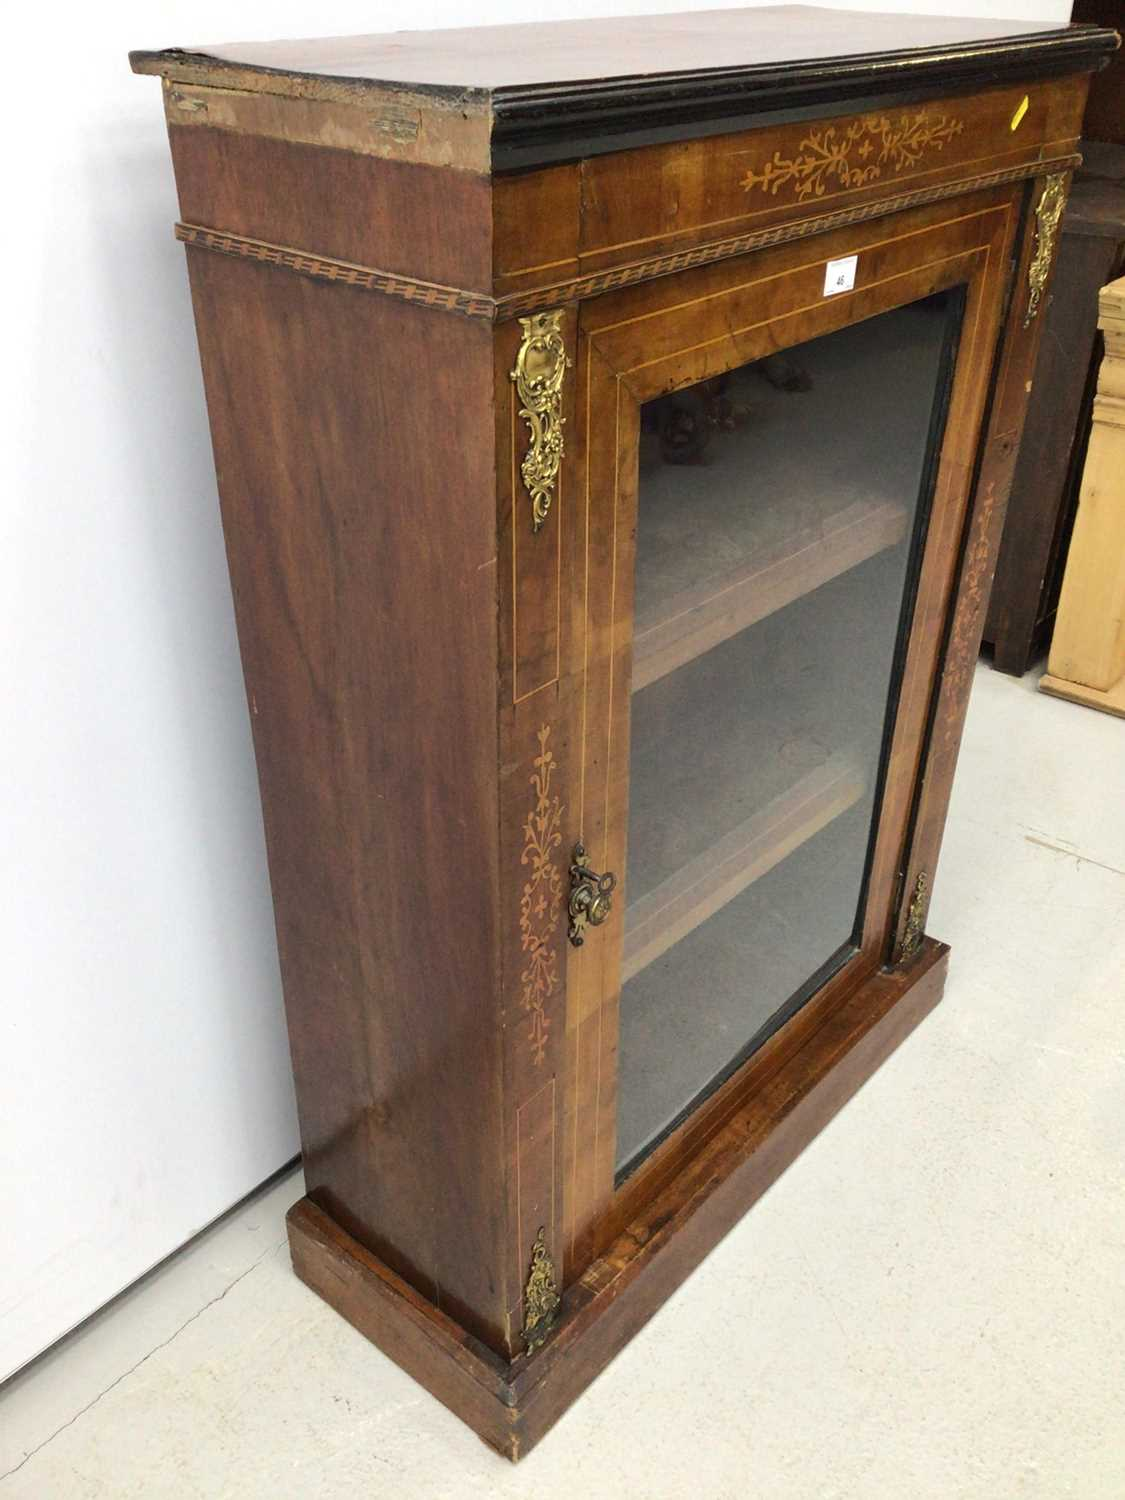 Victorian walnut and inlaid pier cabinet - Image 5 of 5